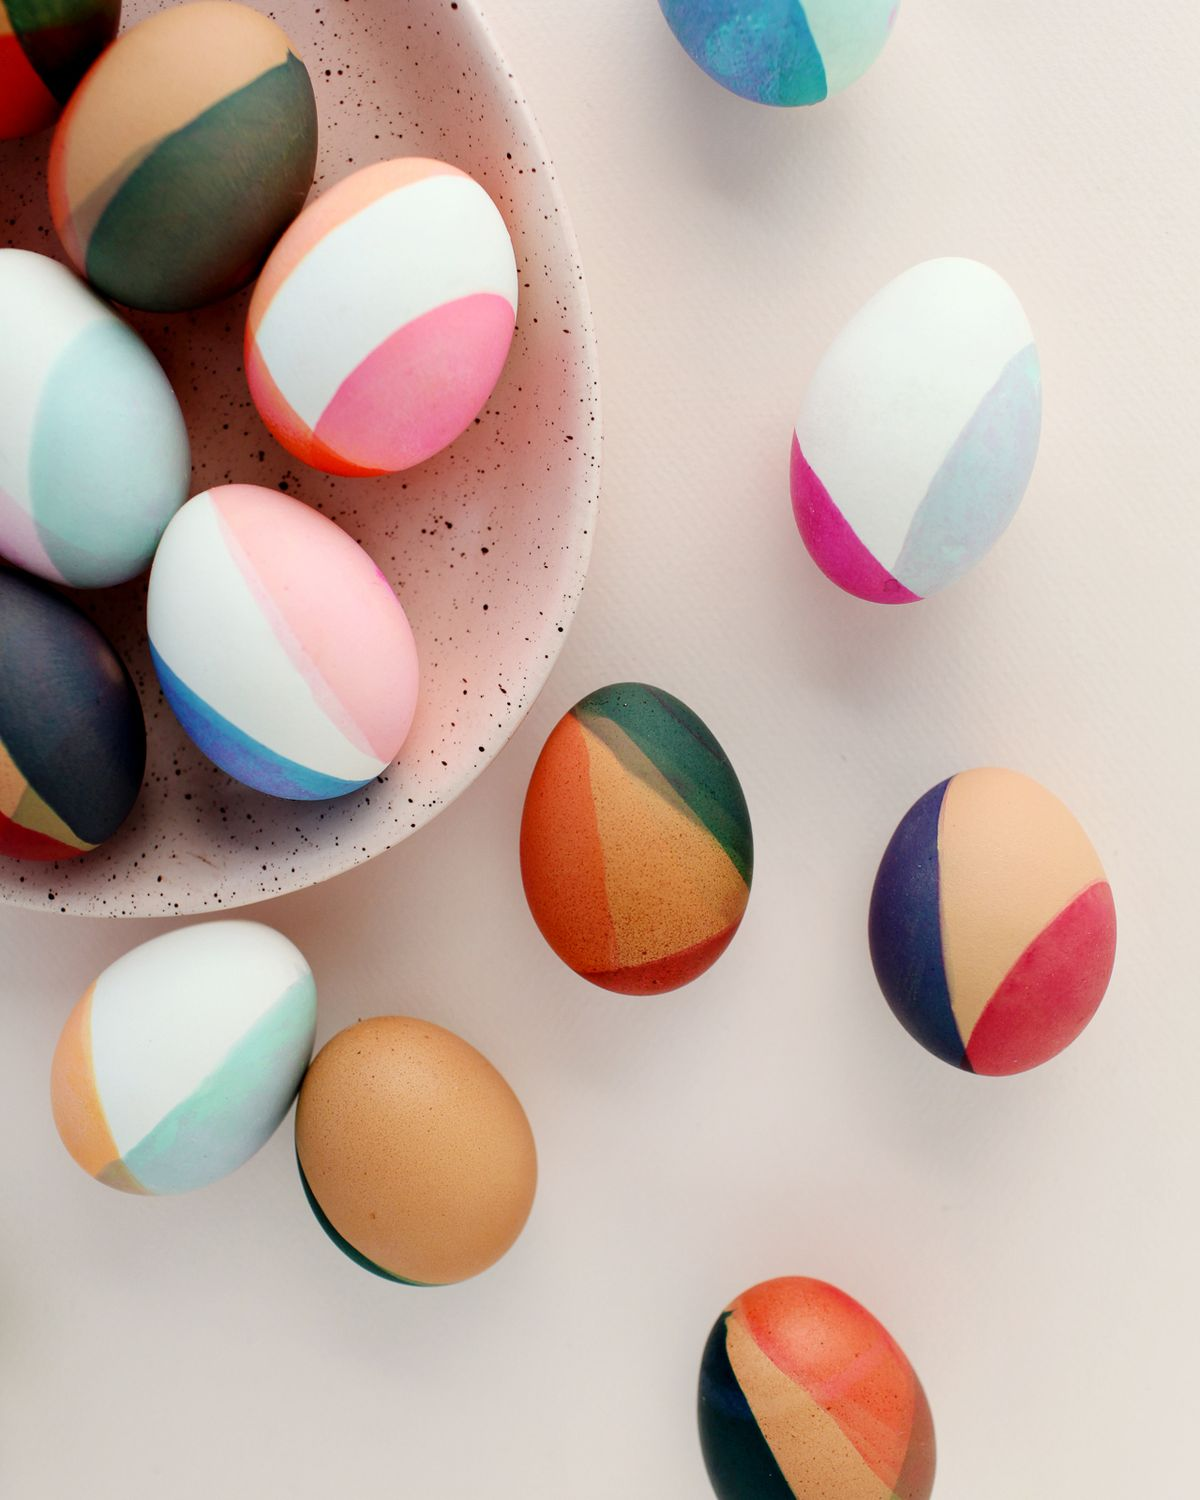 DIY Modern Color-Blocked Easter Eggs inspired by earthy tones and neutral pastels – from bold burgundy and terra cotta to soft pinks and sage green hues!